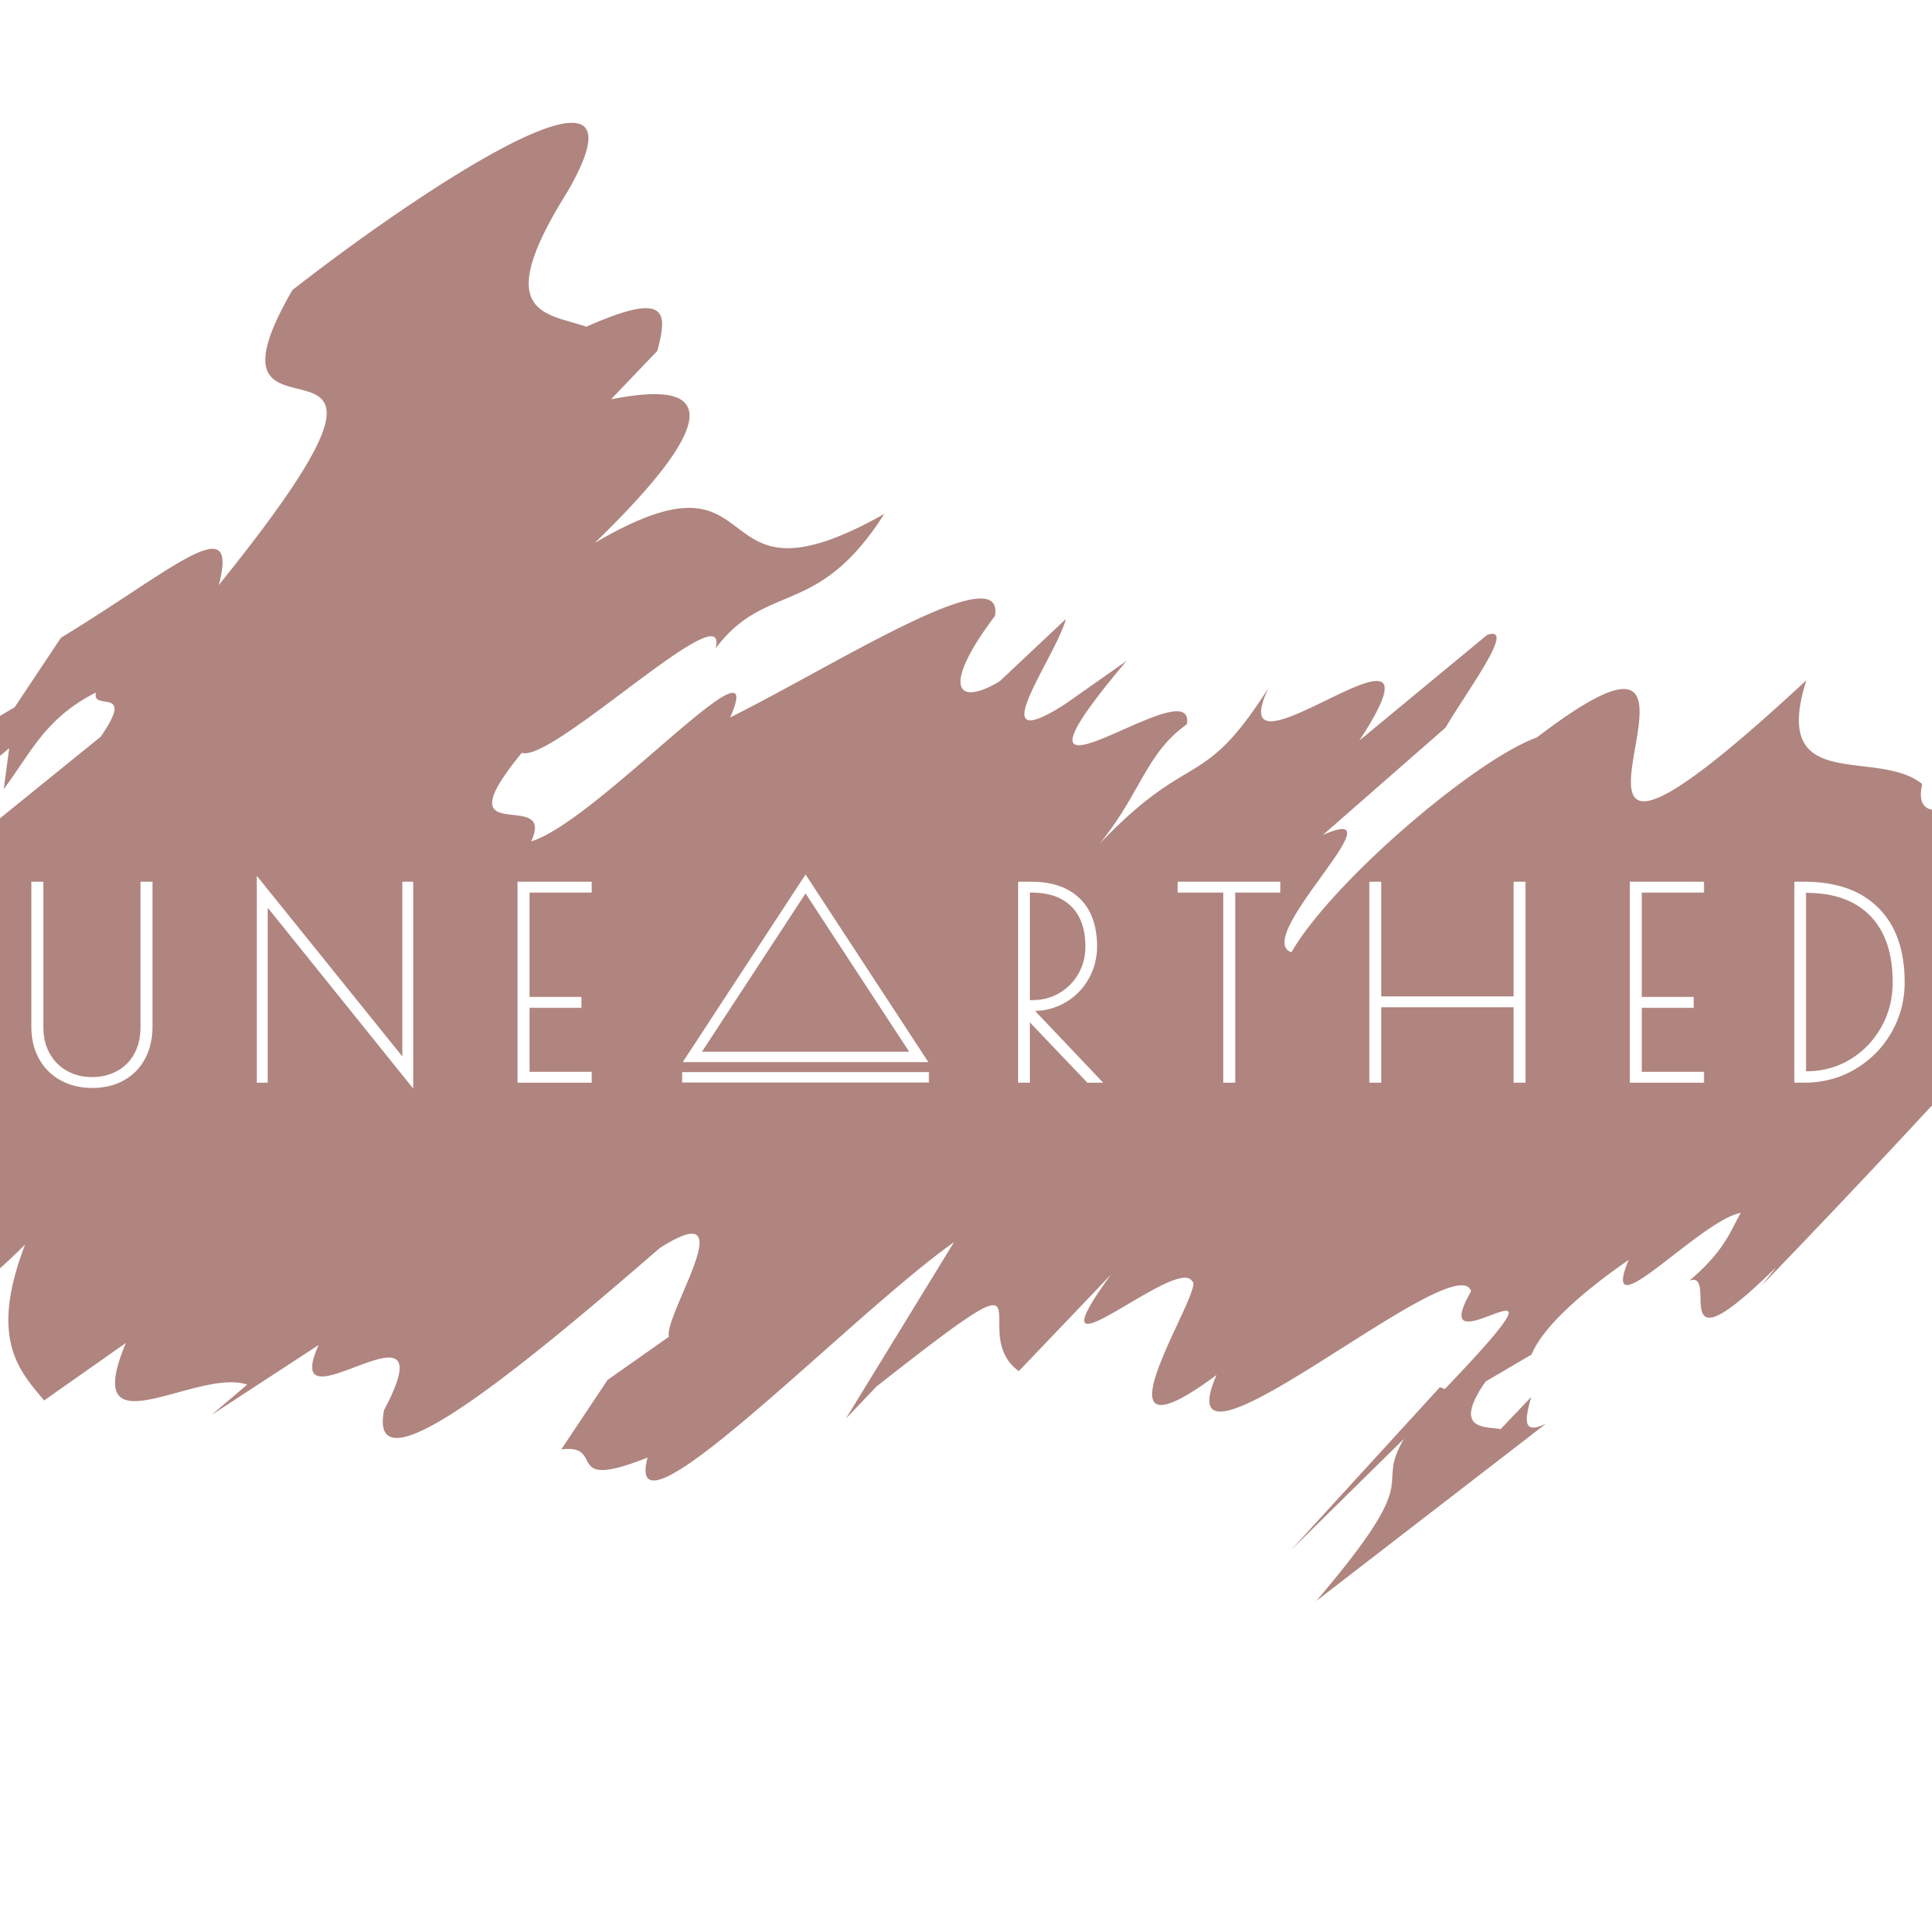 unearthed logo (1).jpg